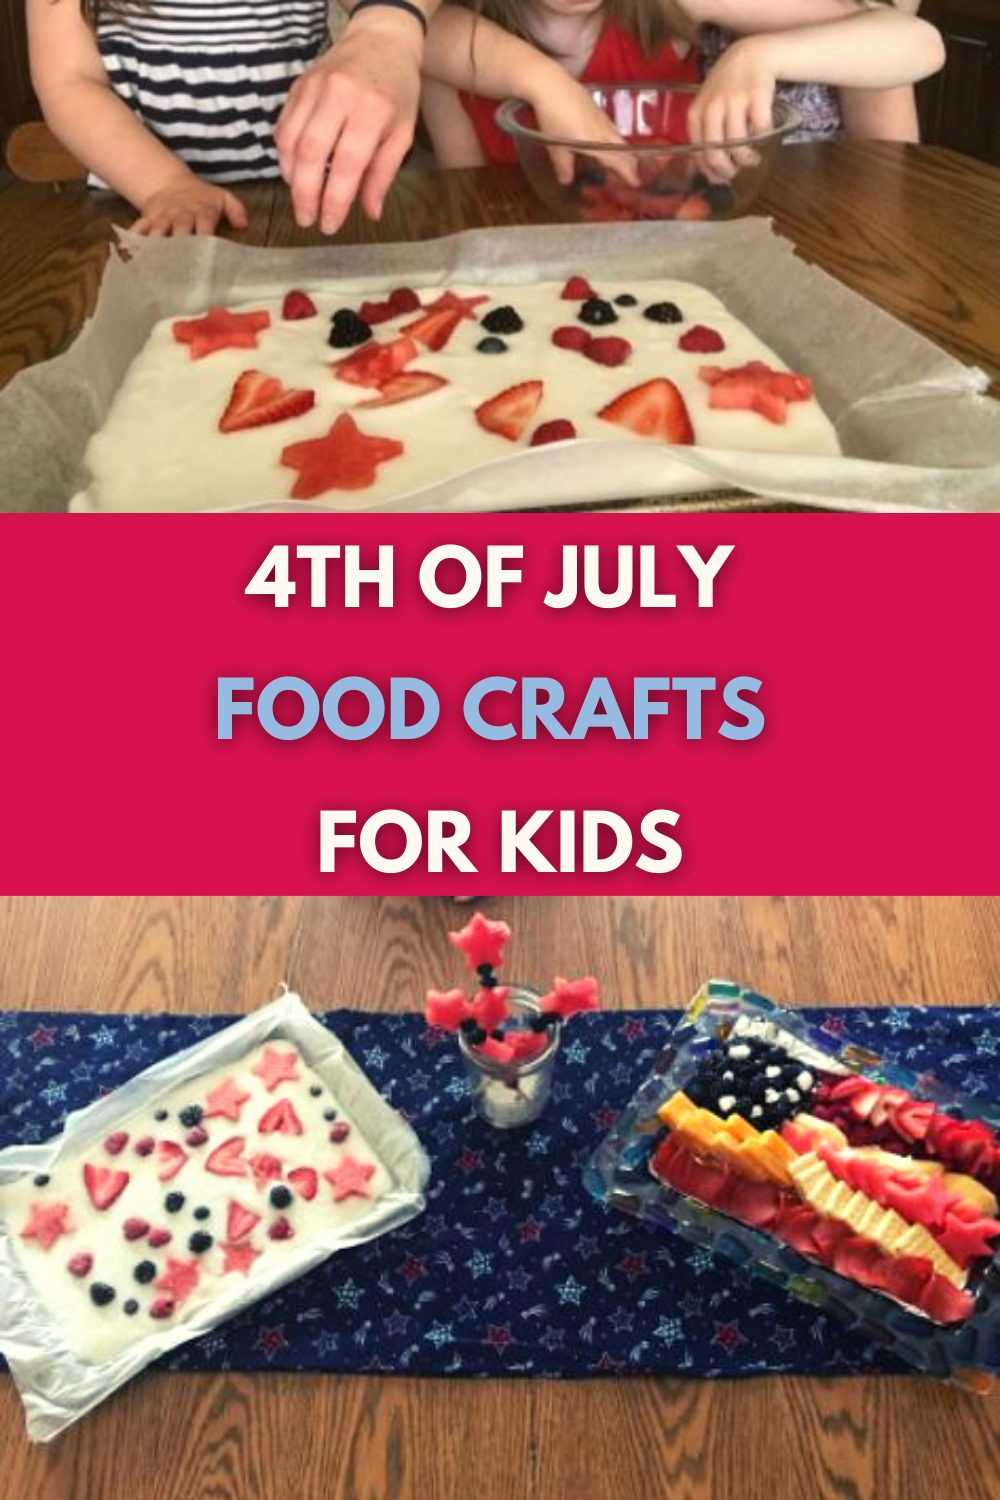 These 4th of July food crafts for kids are super-fun and easy to make. And most importantly, they are red, white and delicious. #4thofjuly #4thofjulyfoodcrafts #kidscrafts #foodcrafts #nymelrosefamily via @jennymelrose